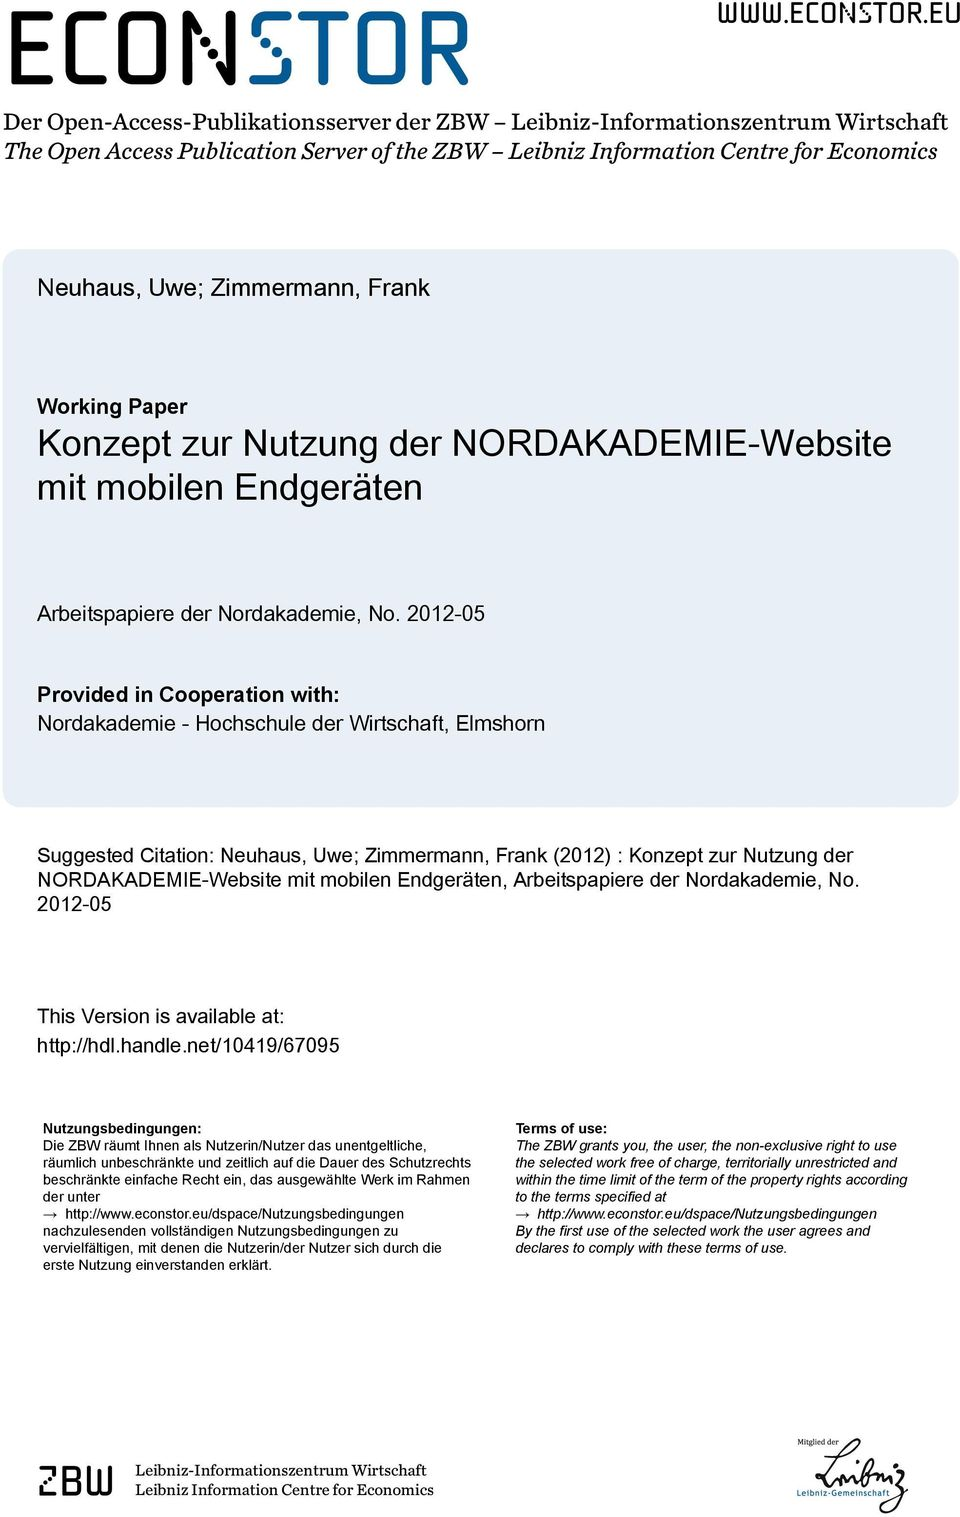 eu Der Open-Access-Publikationsserver der ZBW Leibniz-Informationszentrum Wirtschaft The Open Access Publication Server of the ZBW Leibniz Information Centre for Economics Neuhaus, Uwe; Zimmermann,